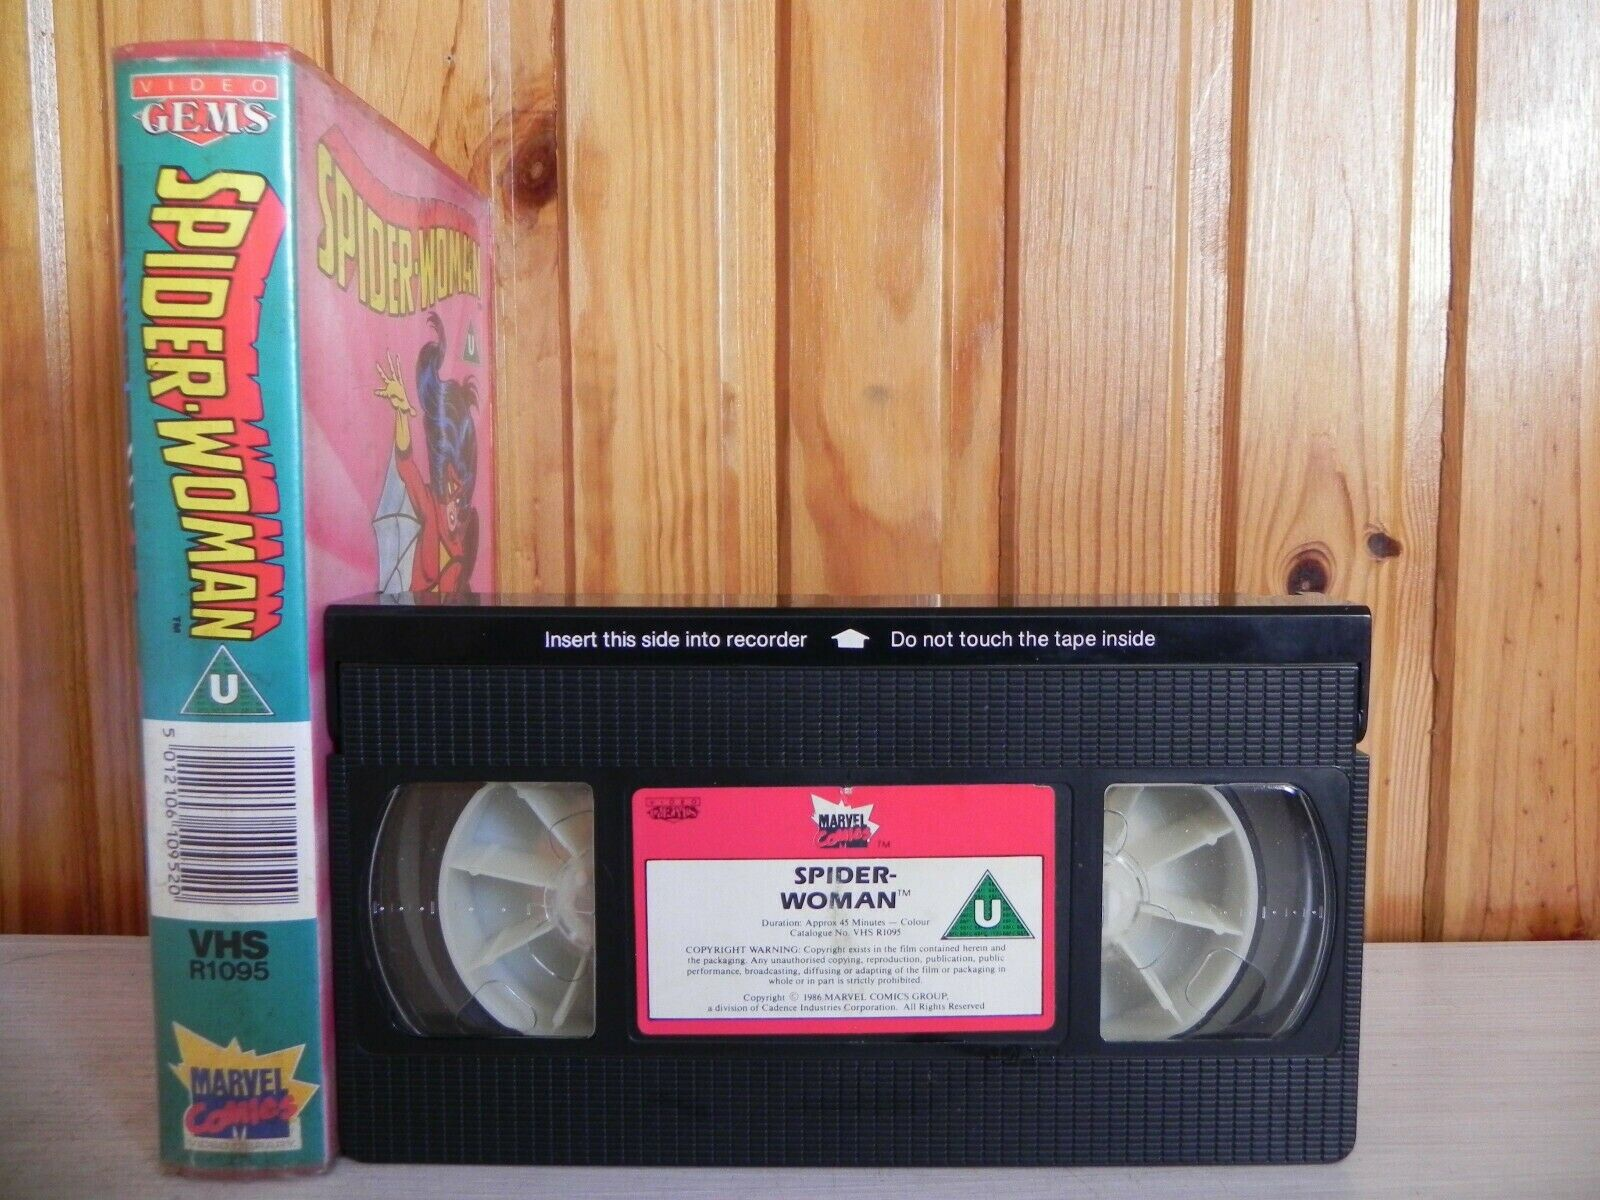 Spider-Woman & The Great Magini - T.V. Series (1979) - Marvel Comics Video - VHS